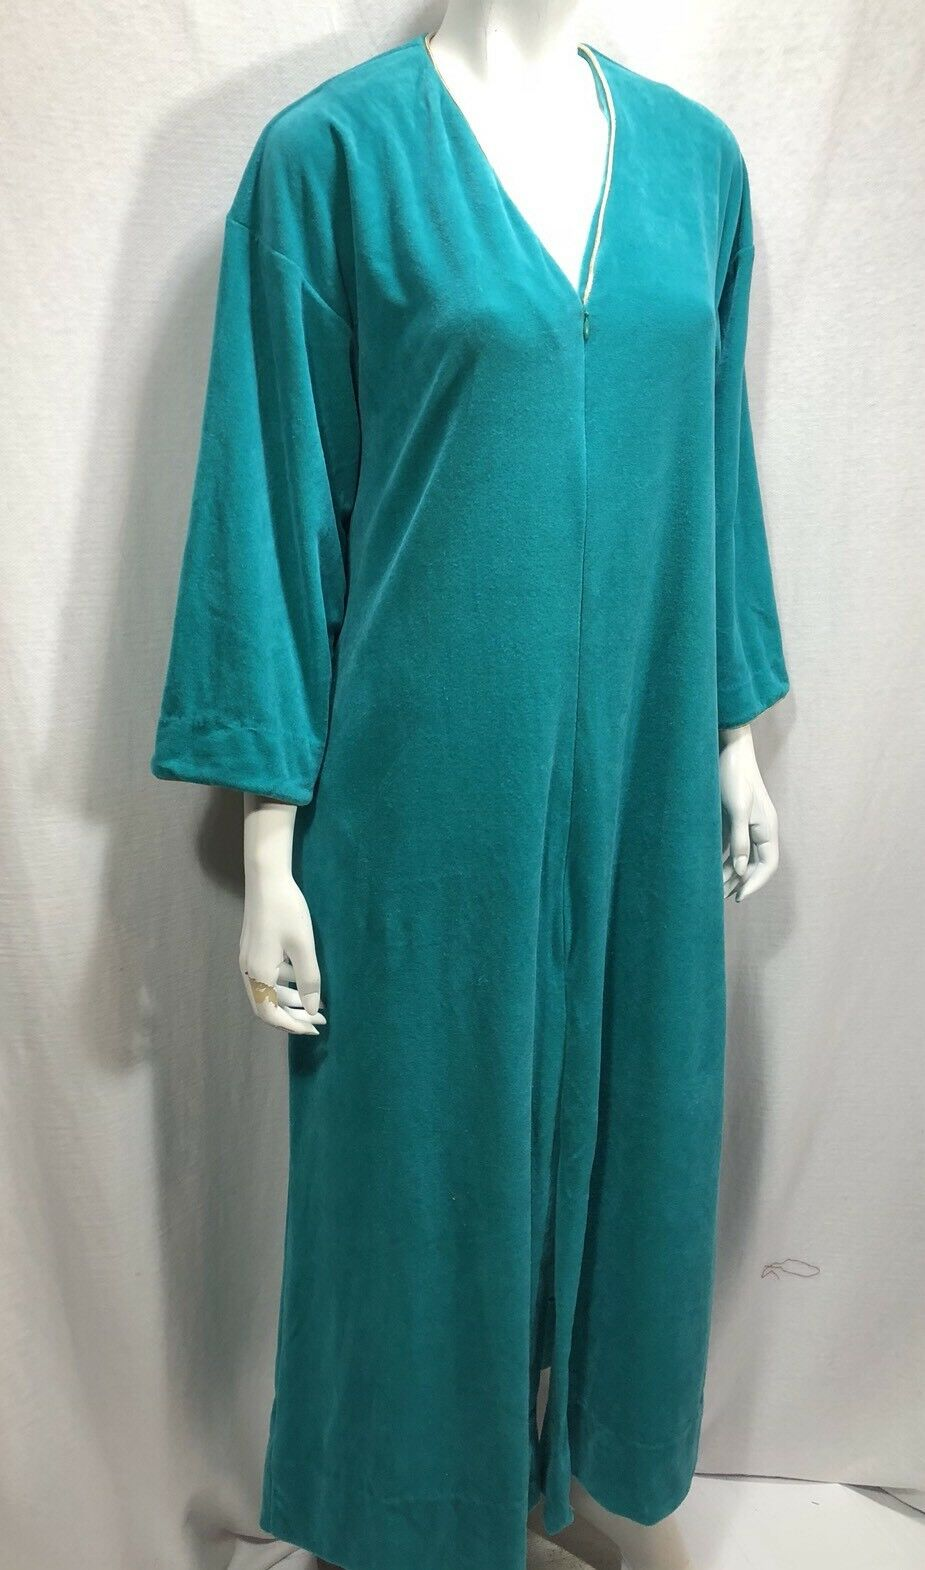 Vintage Leisure Lady gold Piping Turquoise 1 4 Zip House Coat Women S fits big